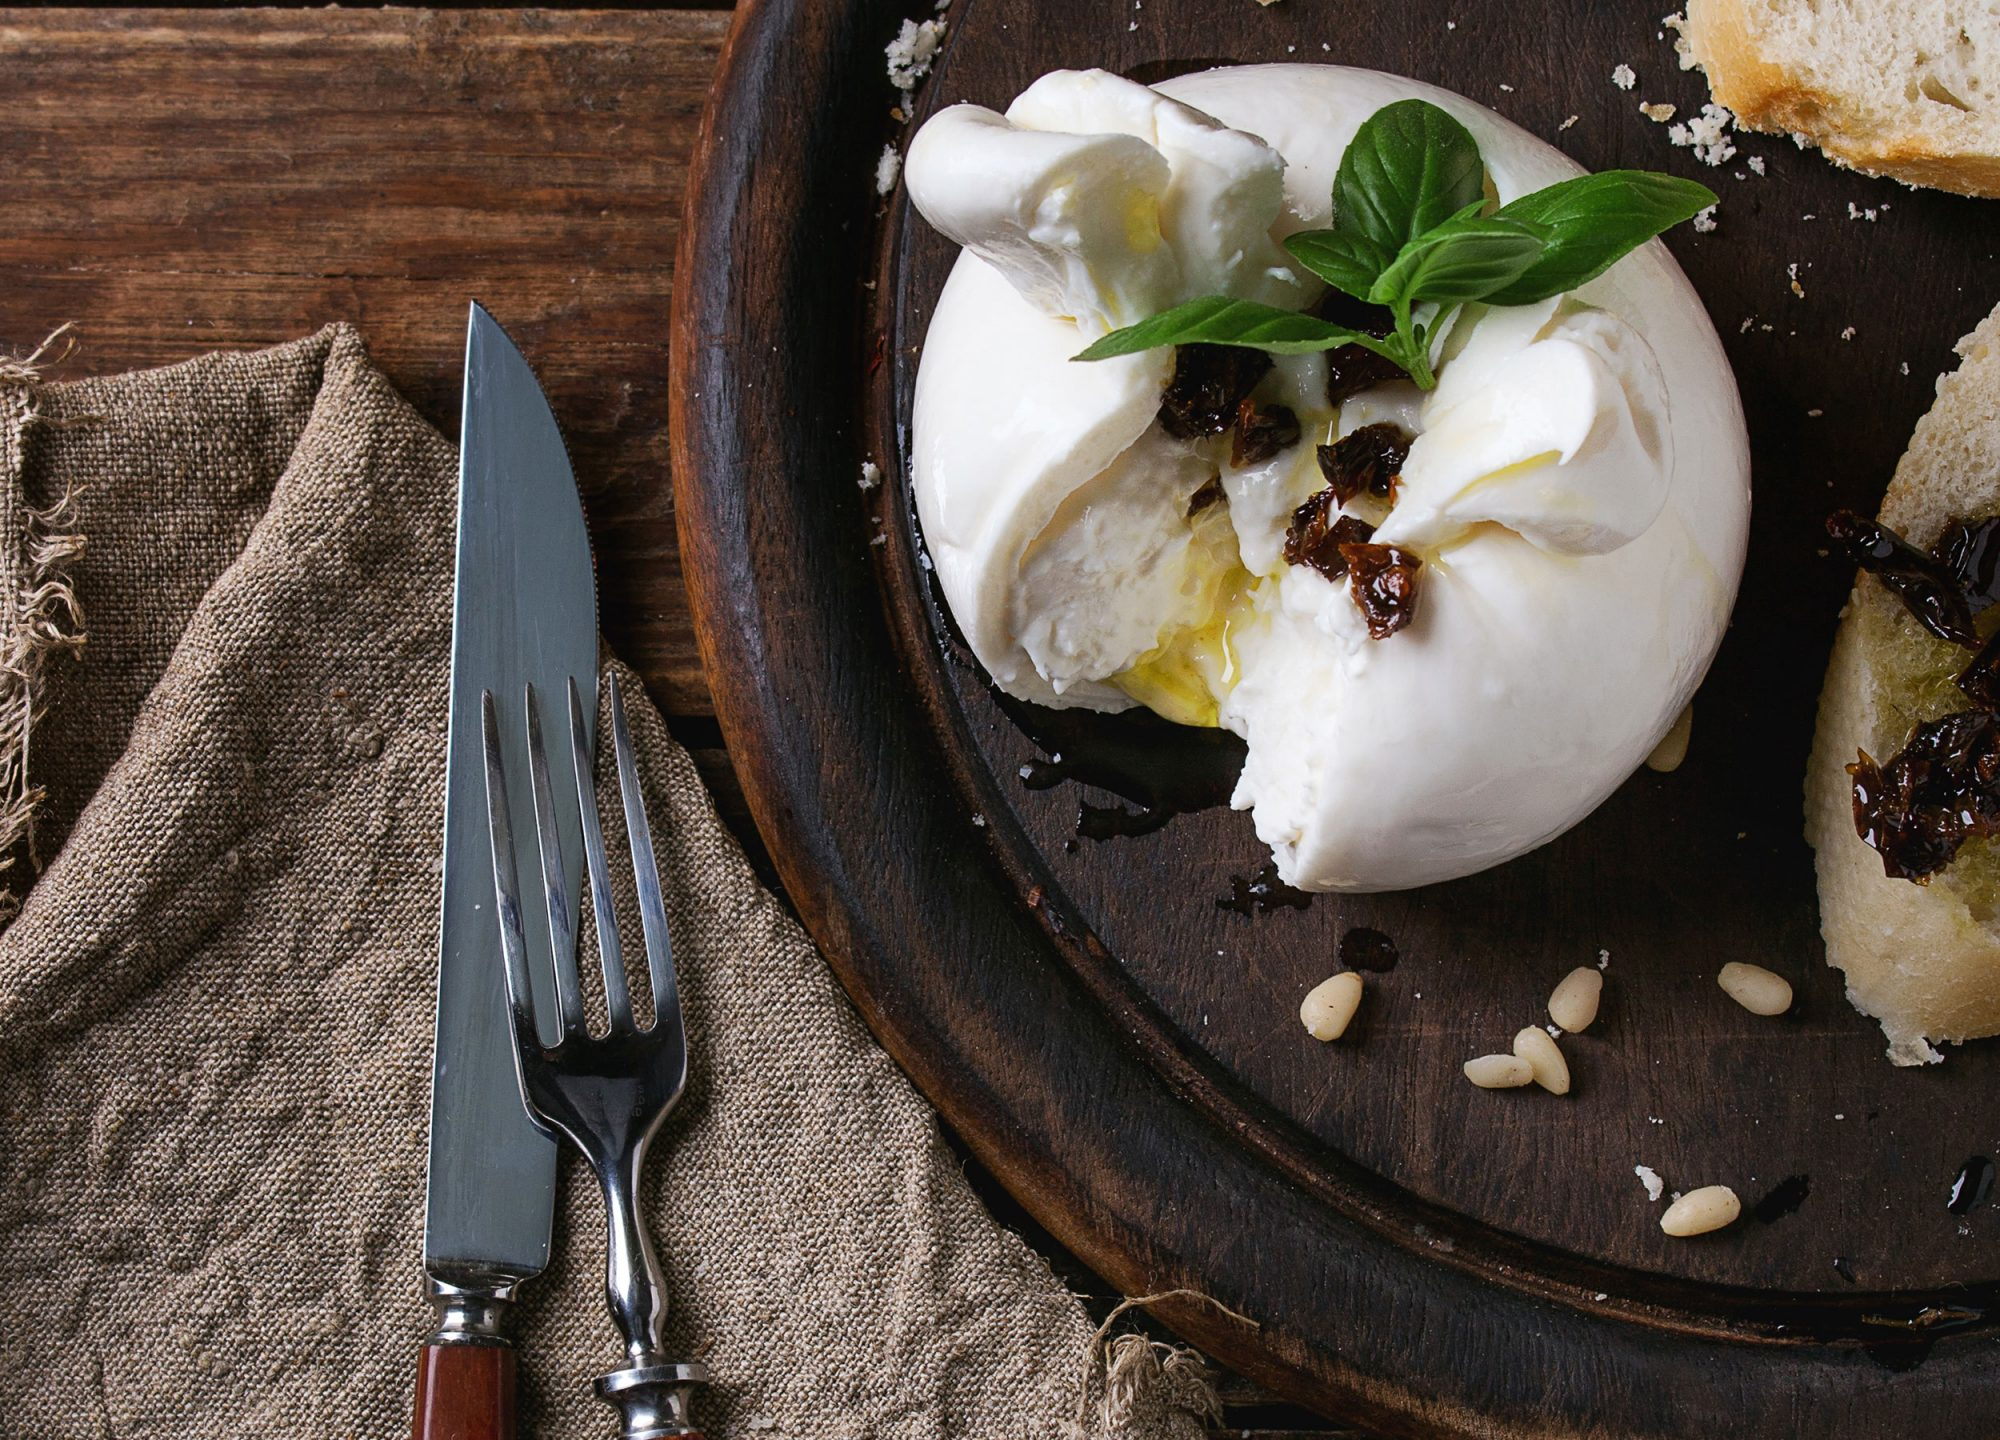 Did You Know There Are Actually 12 Types of Mozzarella?